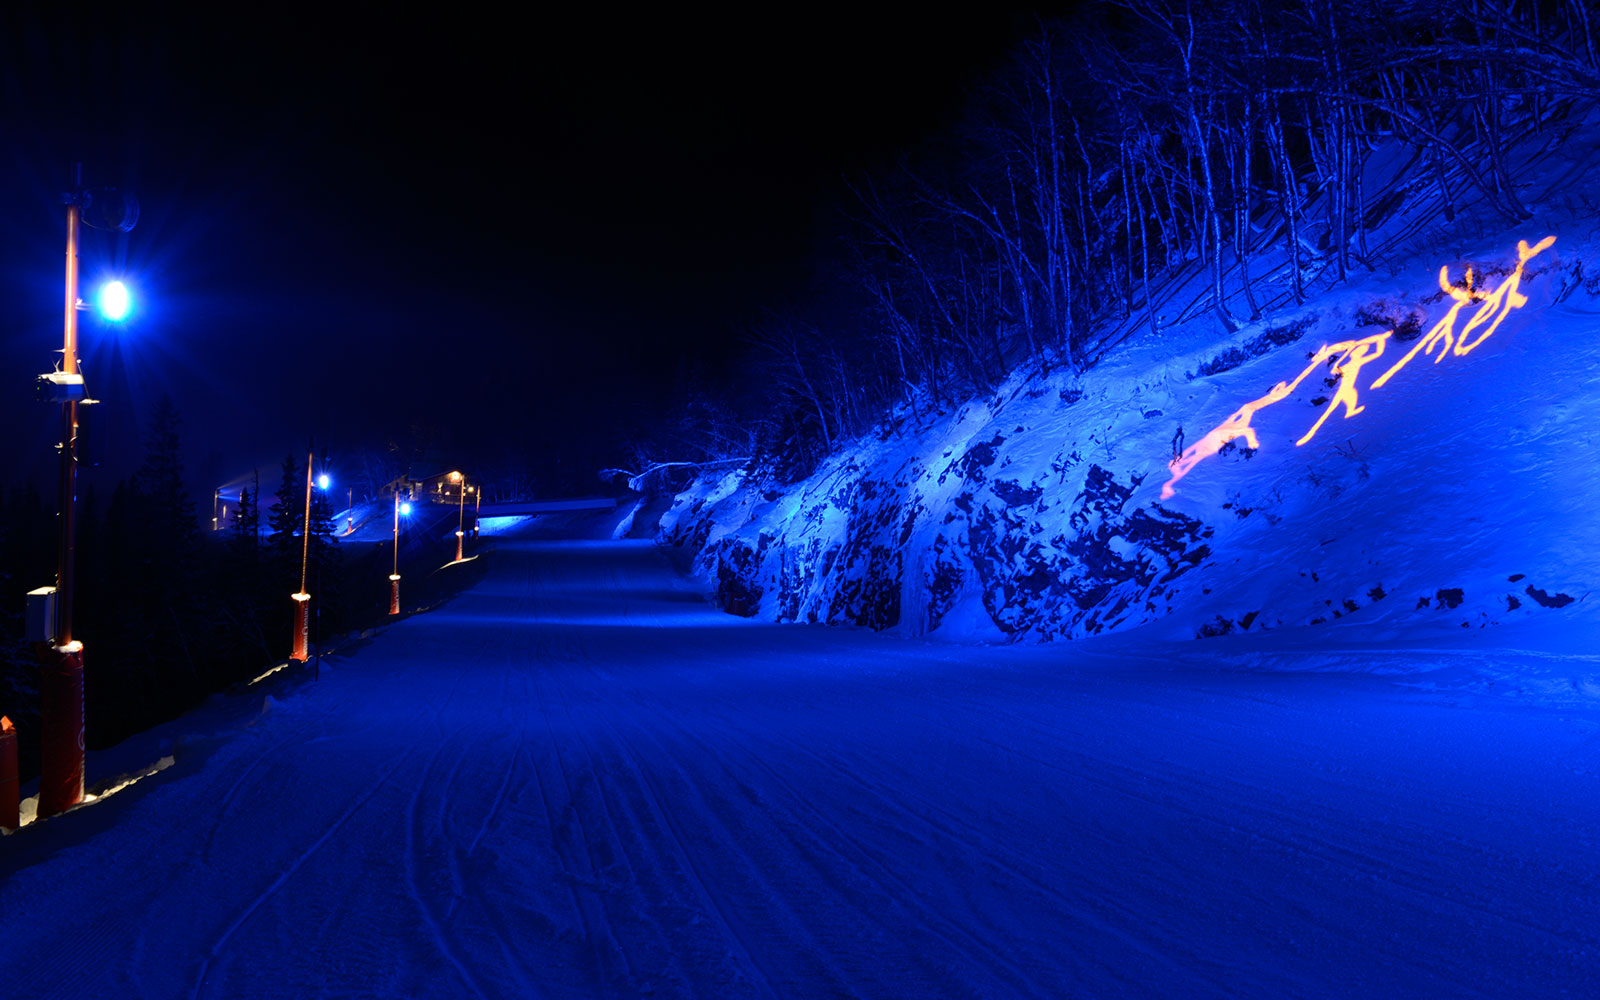 <h1>Åre skiing slope</h1><h4>Lighting designer Kai Piippo and SkiStar Åre have created a mystical fairy world that won Lighting Award 2013.</h4><a href='http://www.stockholmlighting.com/references/are-skidbacke'>Read more <i class='icon-arrow-right'></i></a>